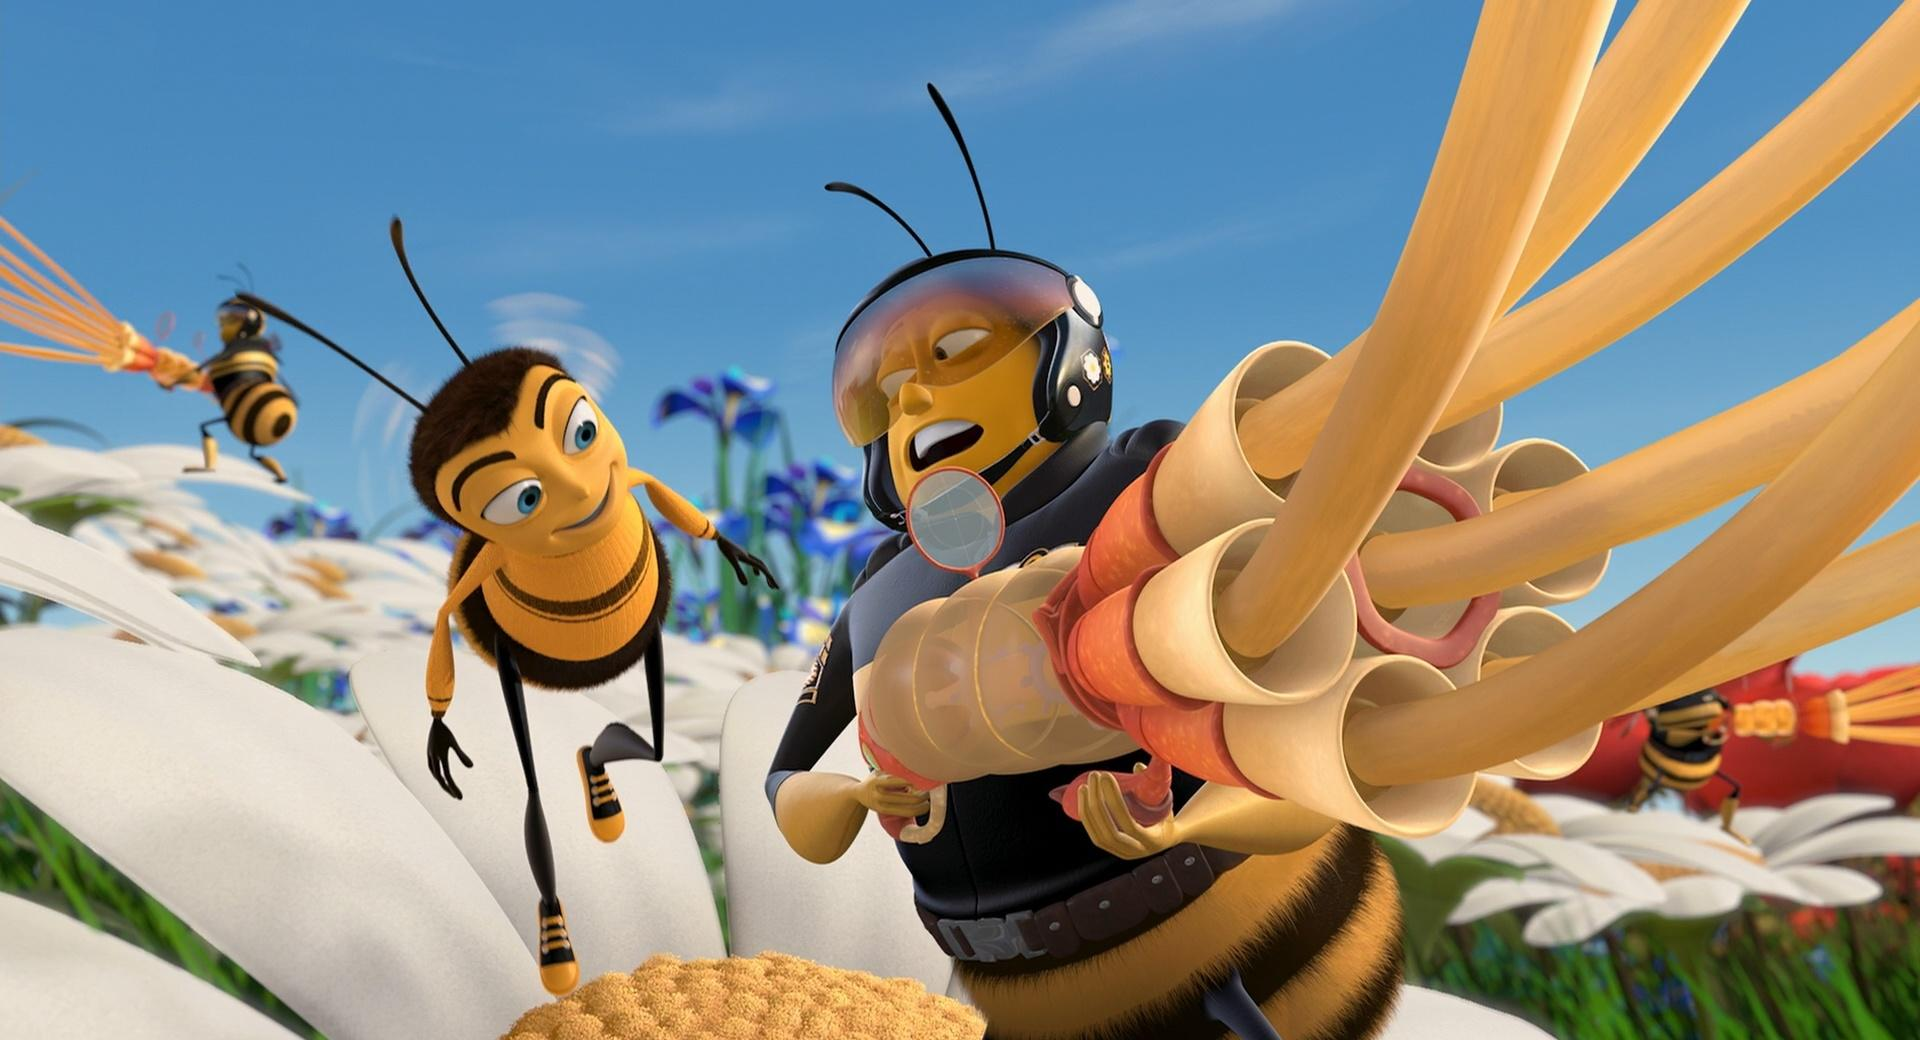 Bee Movie 4 at 750 x 1334 iPhone 6 size wallpapers HD quality